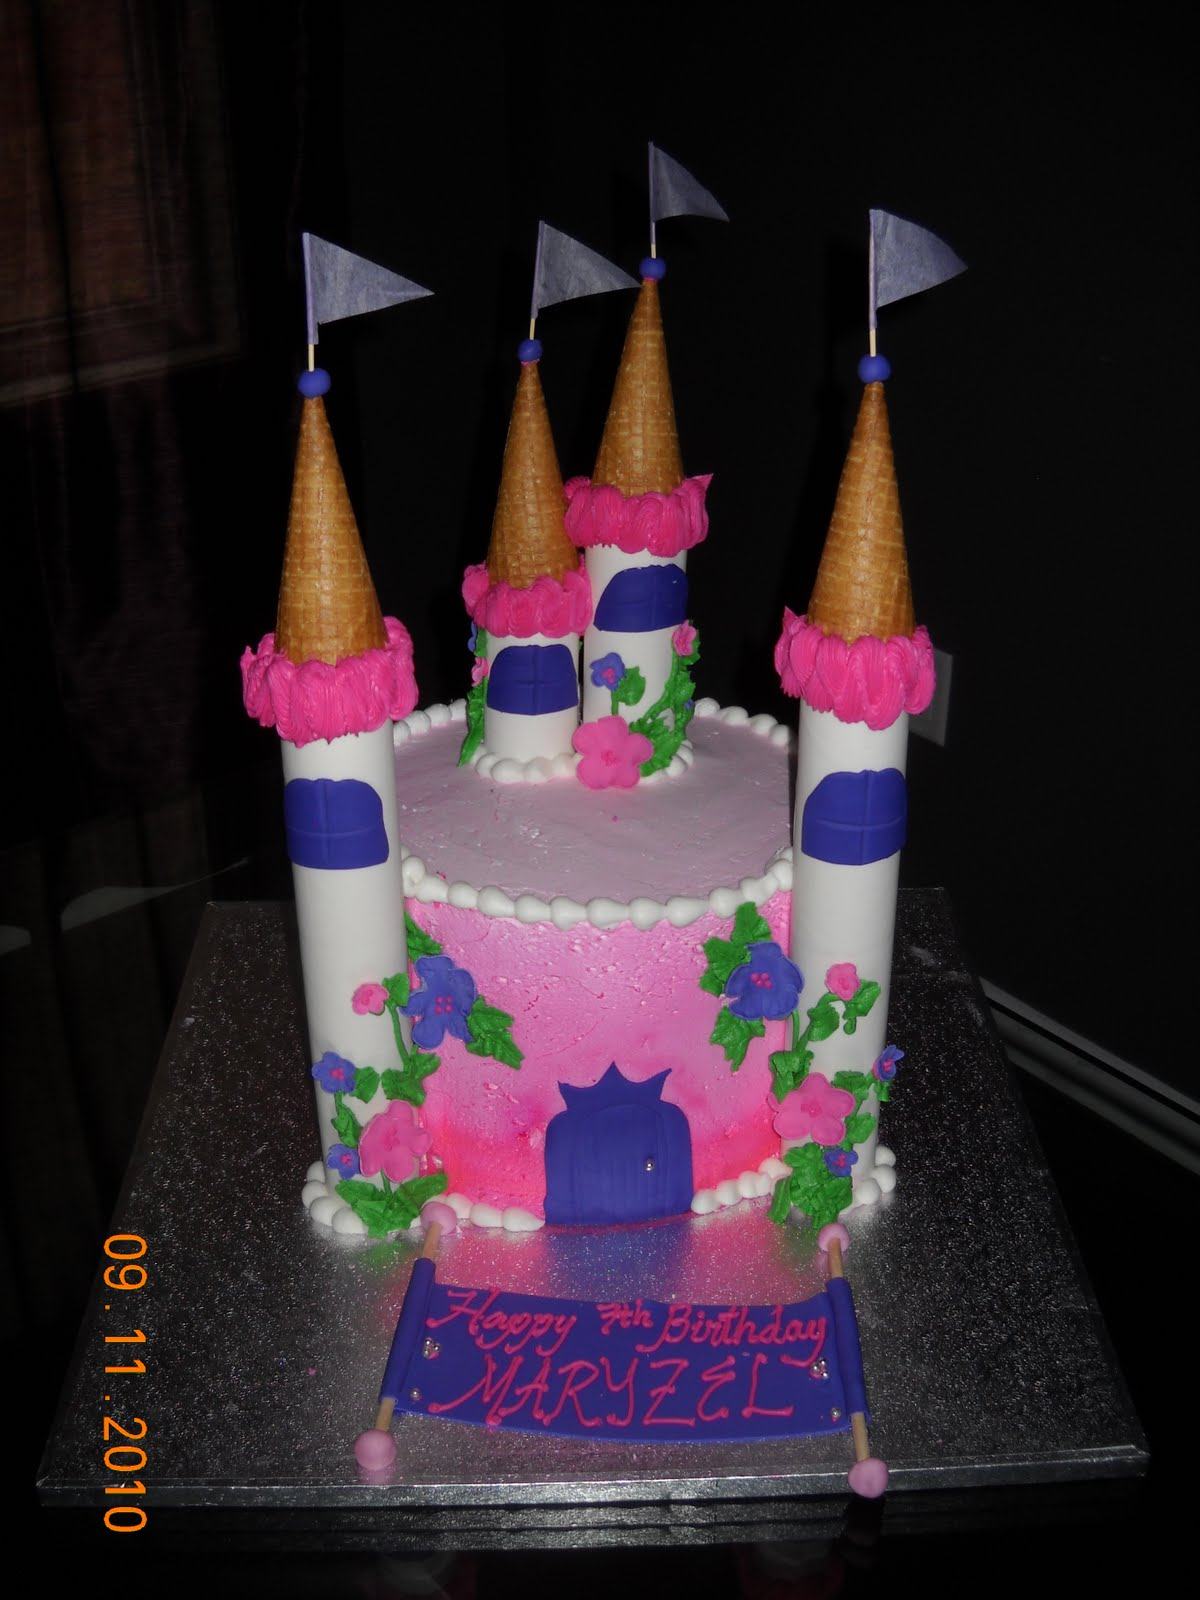 Jocelyns Wedding Cakes and More 2010